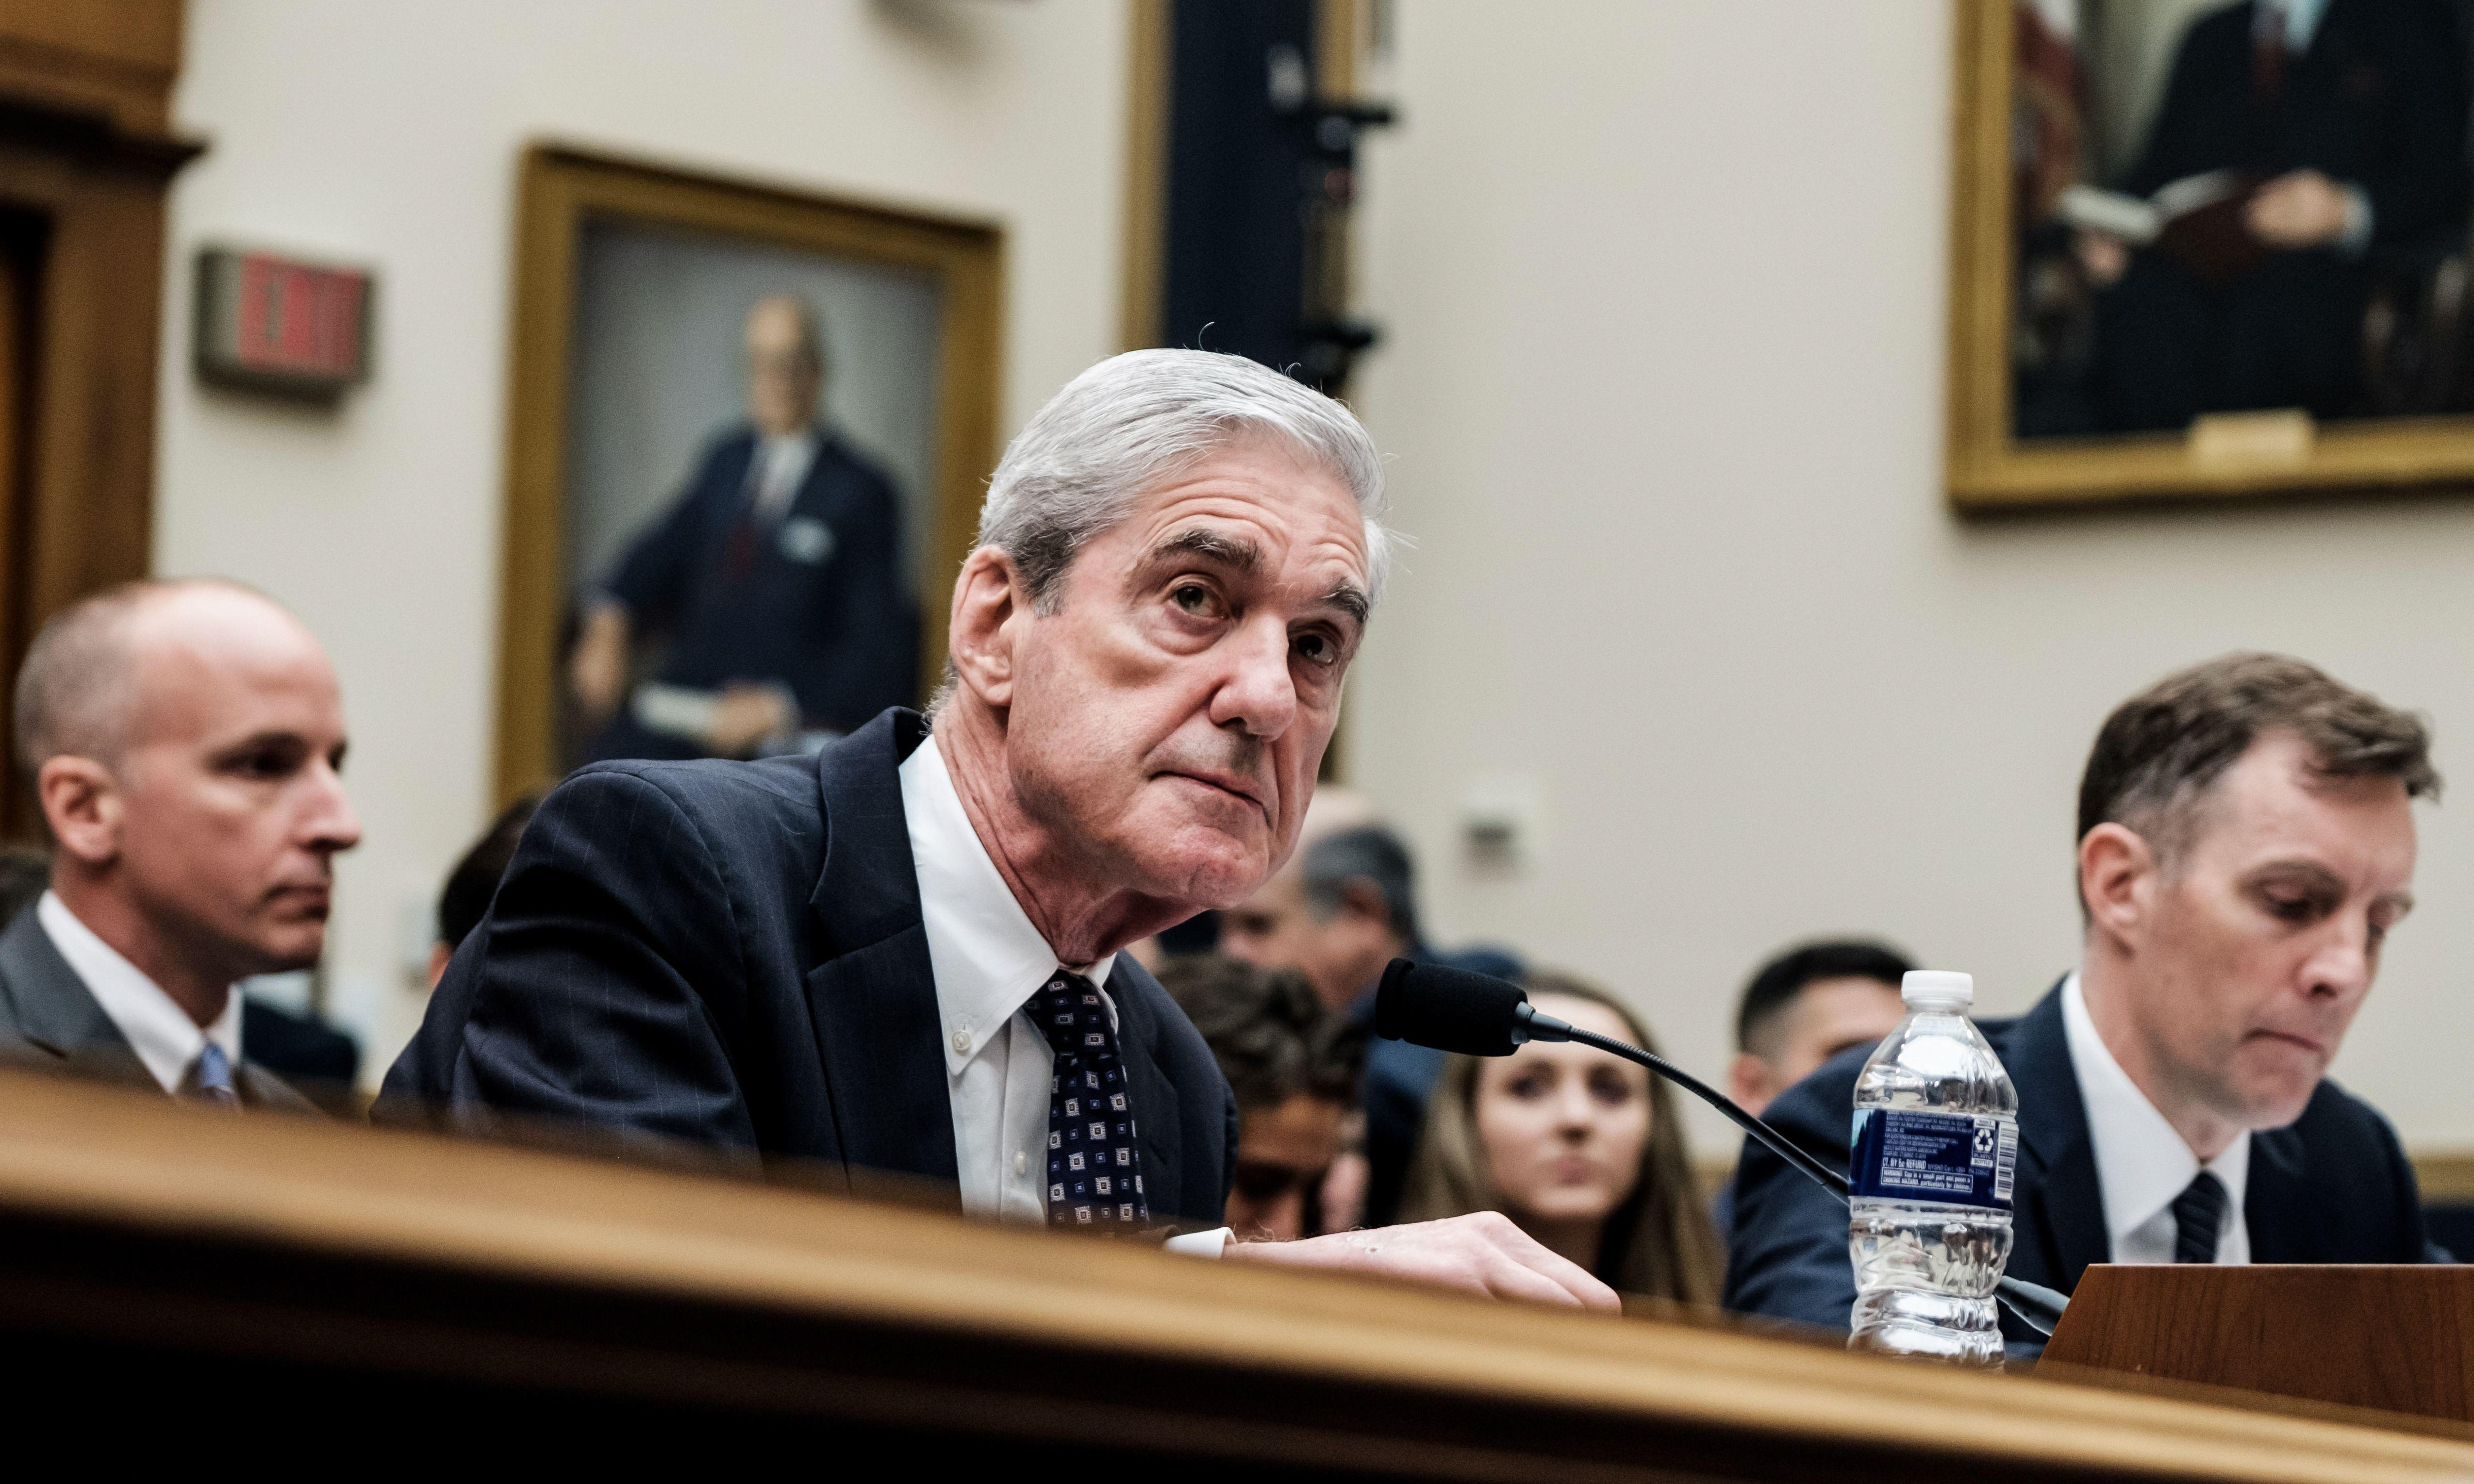 Liberals, it's time to forget the Mueller-fuelled impeachment fantasies